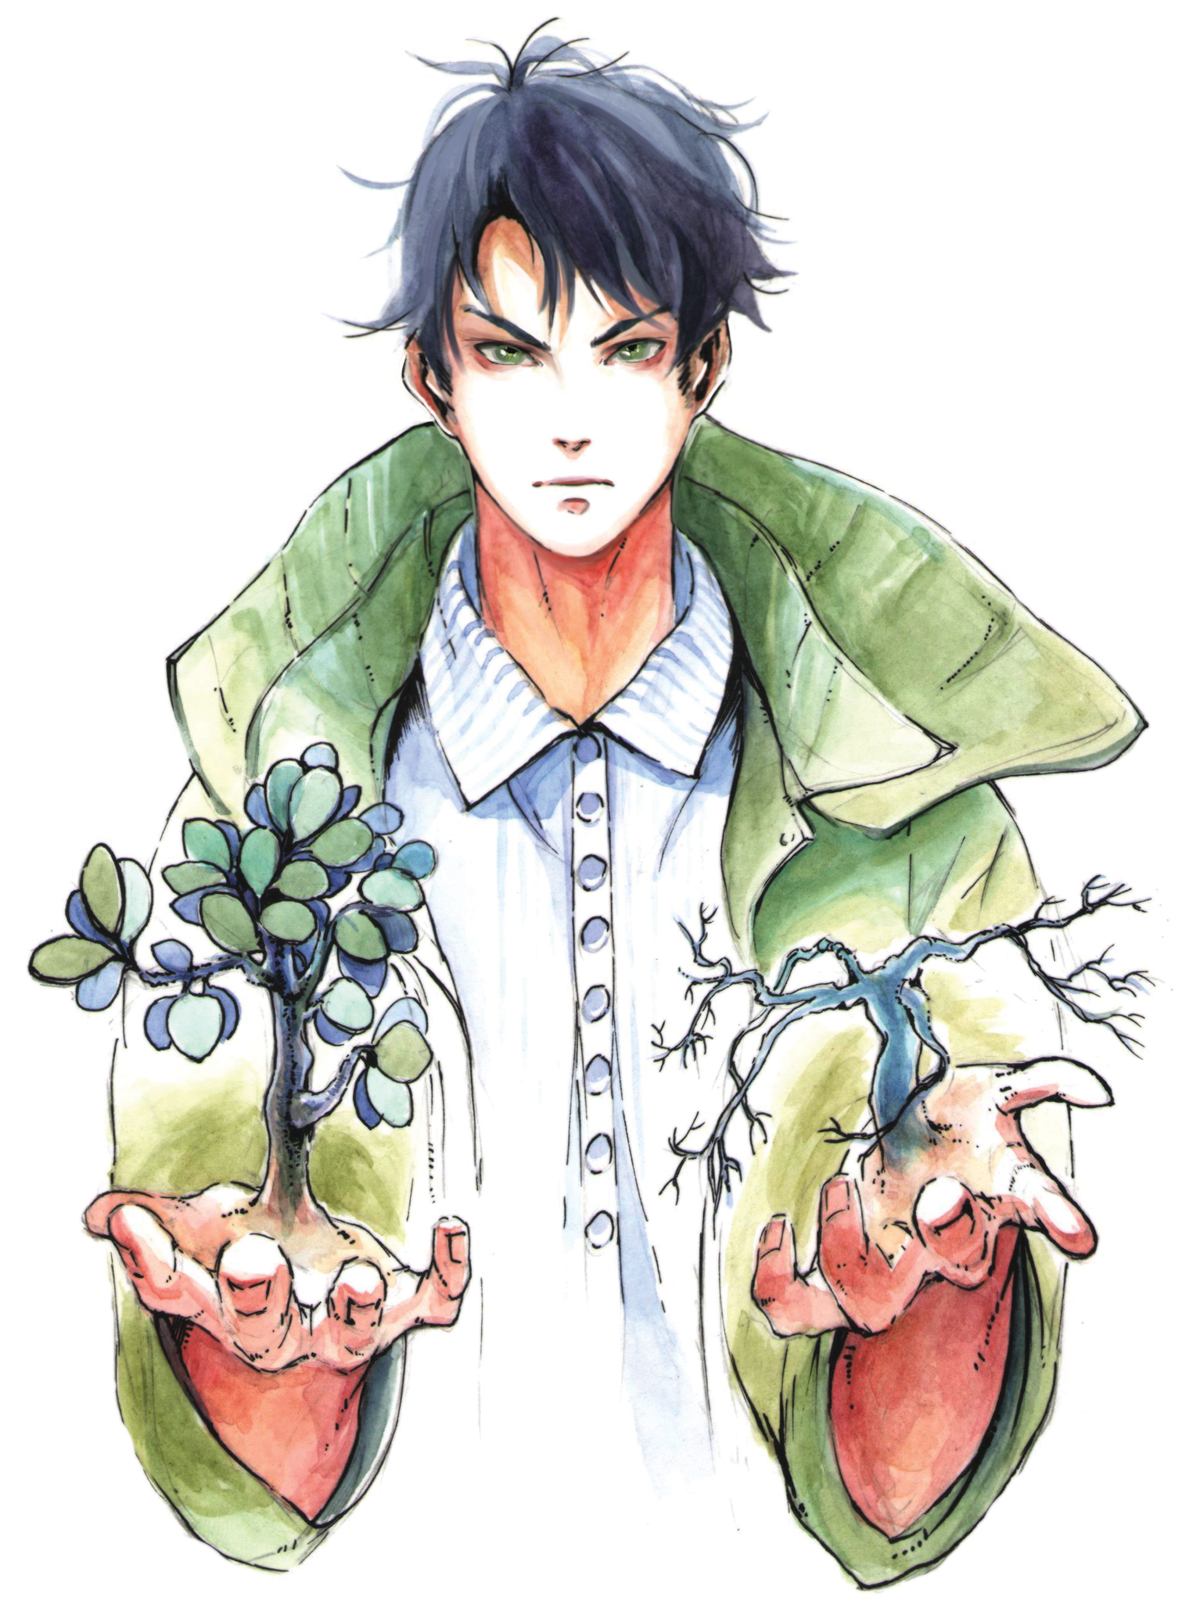 Watercolor manga cover (Nameless Hero) by DziKawa